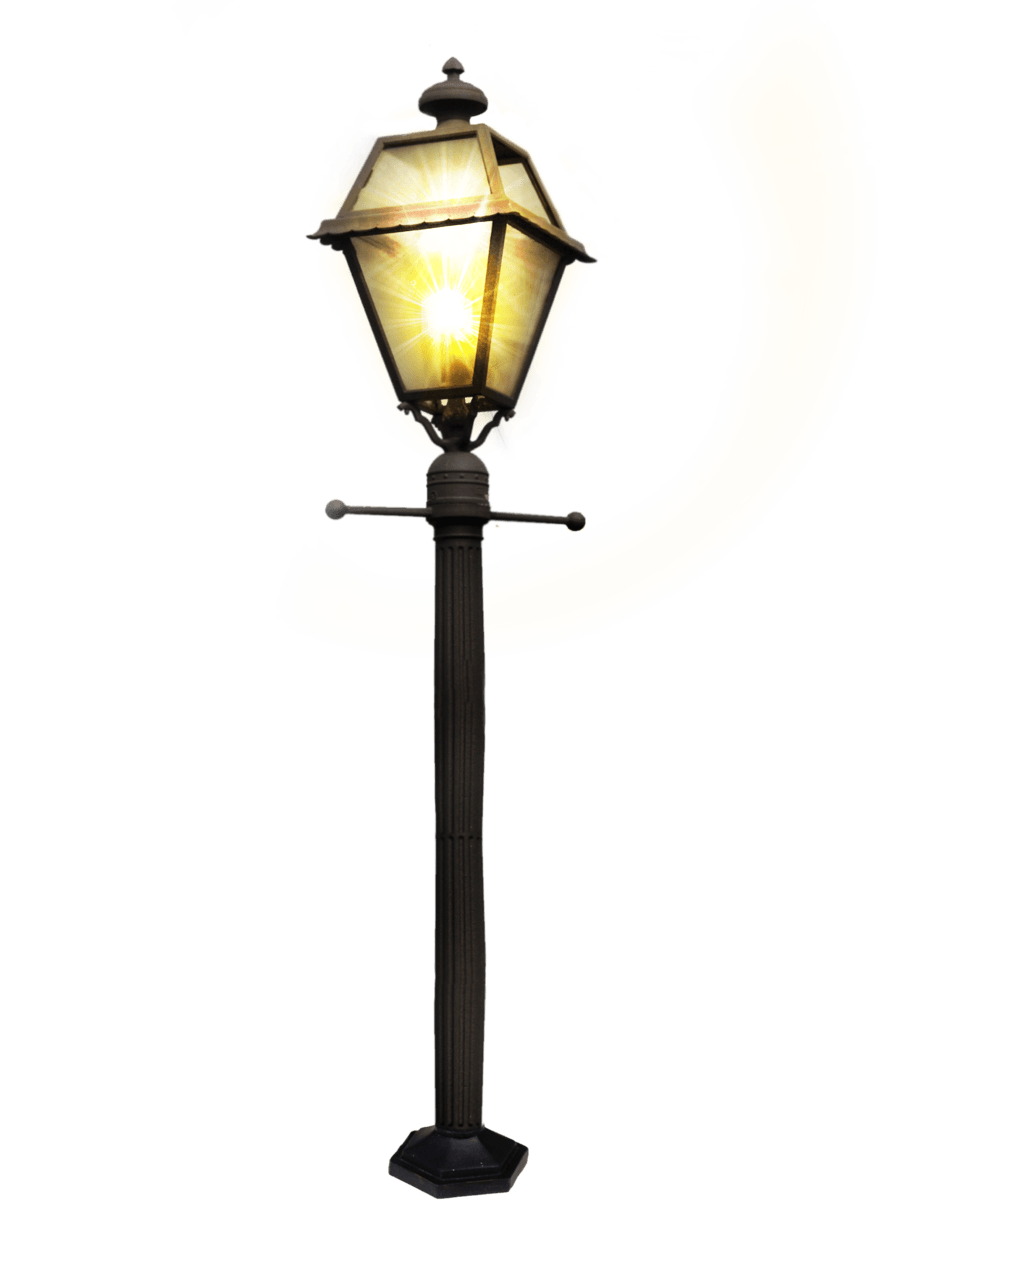 Transparent stickpng objects. Street lamp png picture stock